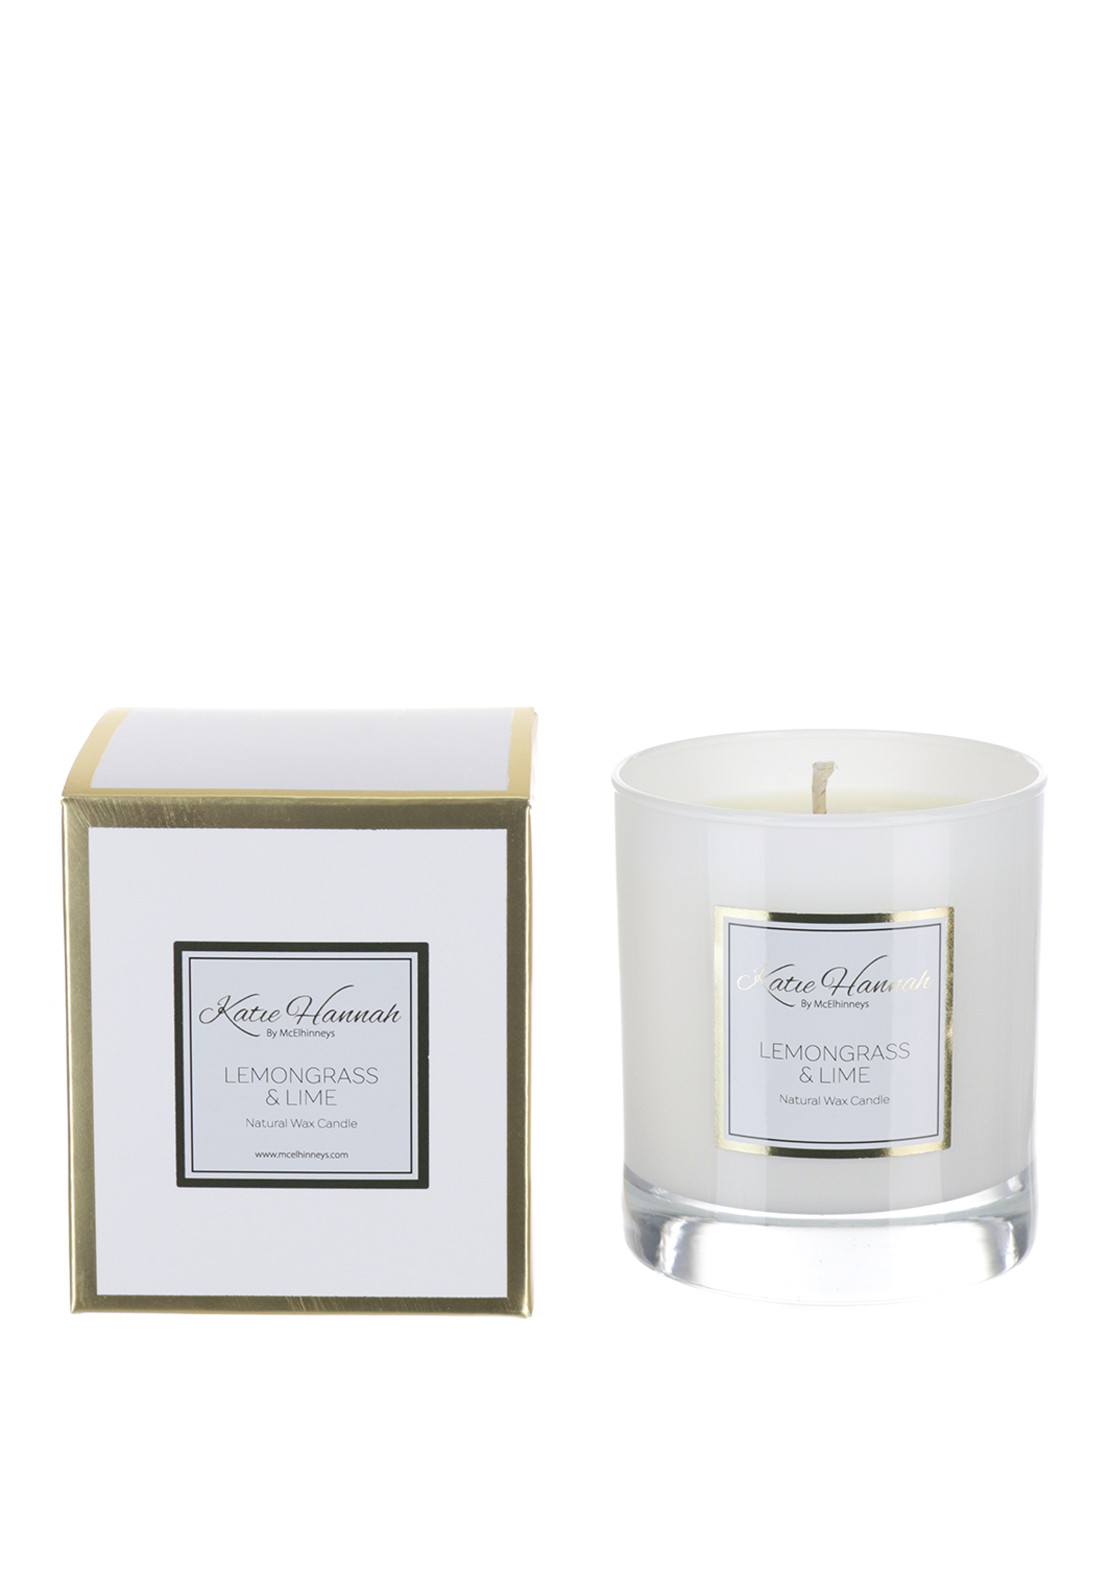 Katie Hannah By McElhinneys Lemongrass & Lime Natural Wax Candle